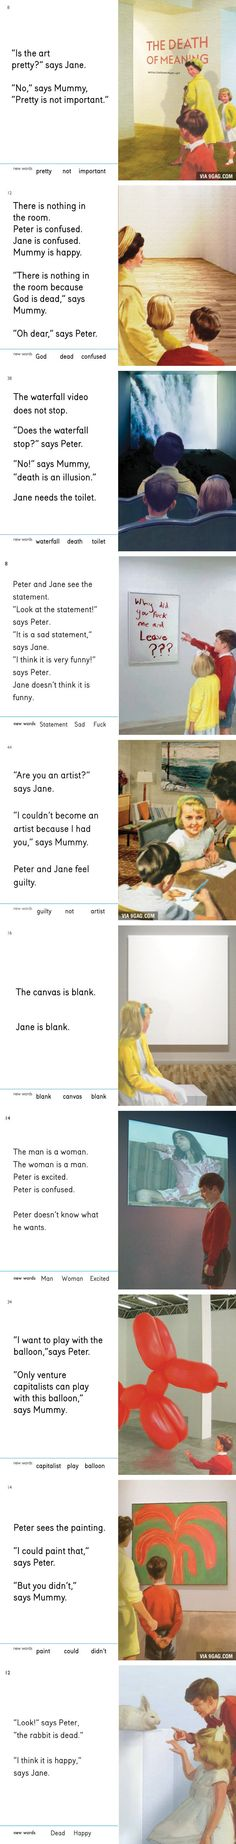 Jane and Peter Learn New Words